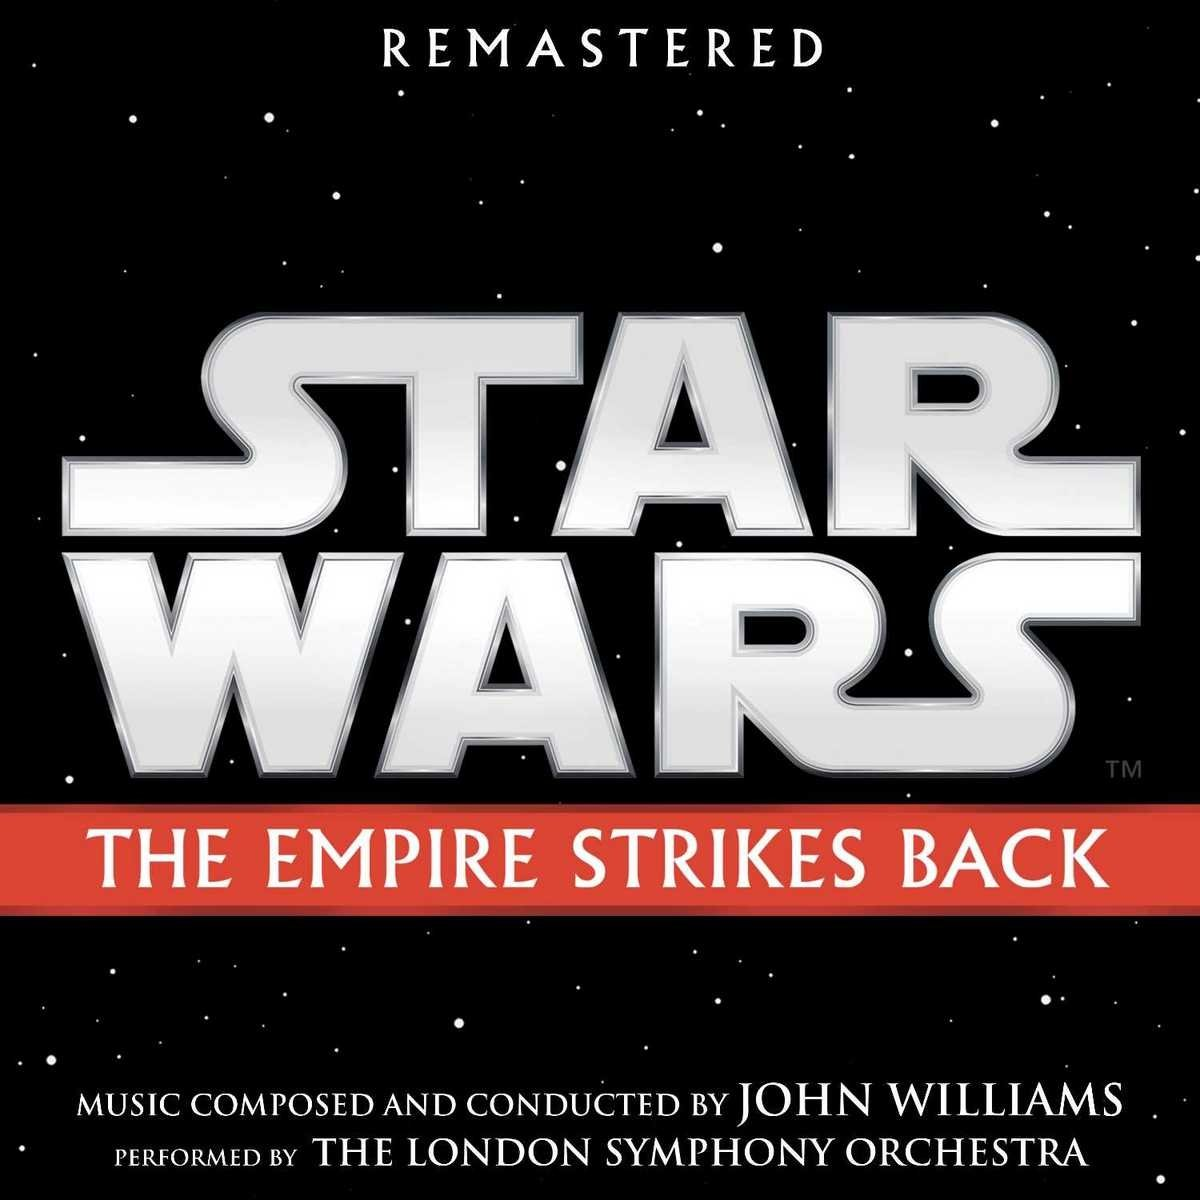 Star Wars: The Empire Strikes Back Remastered